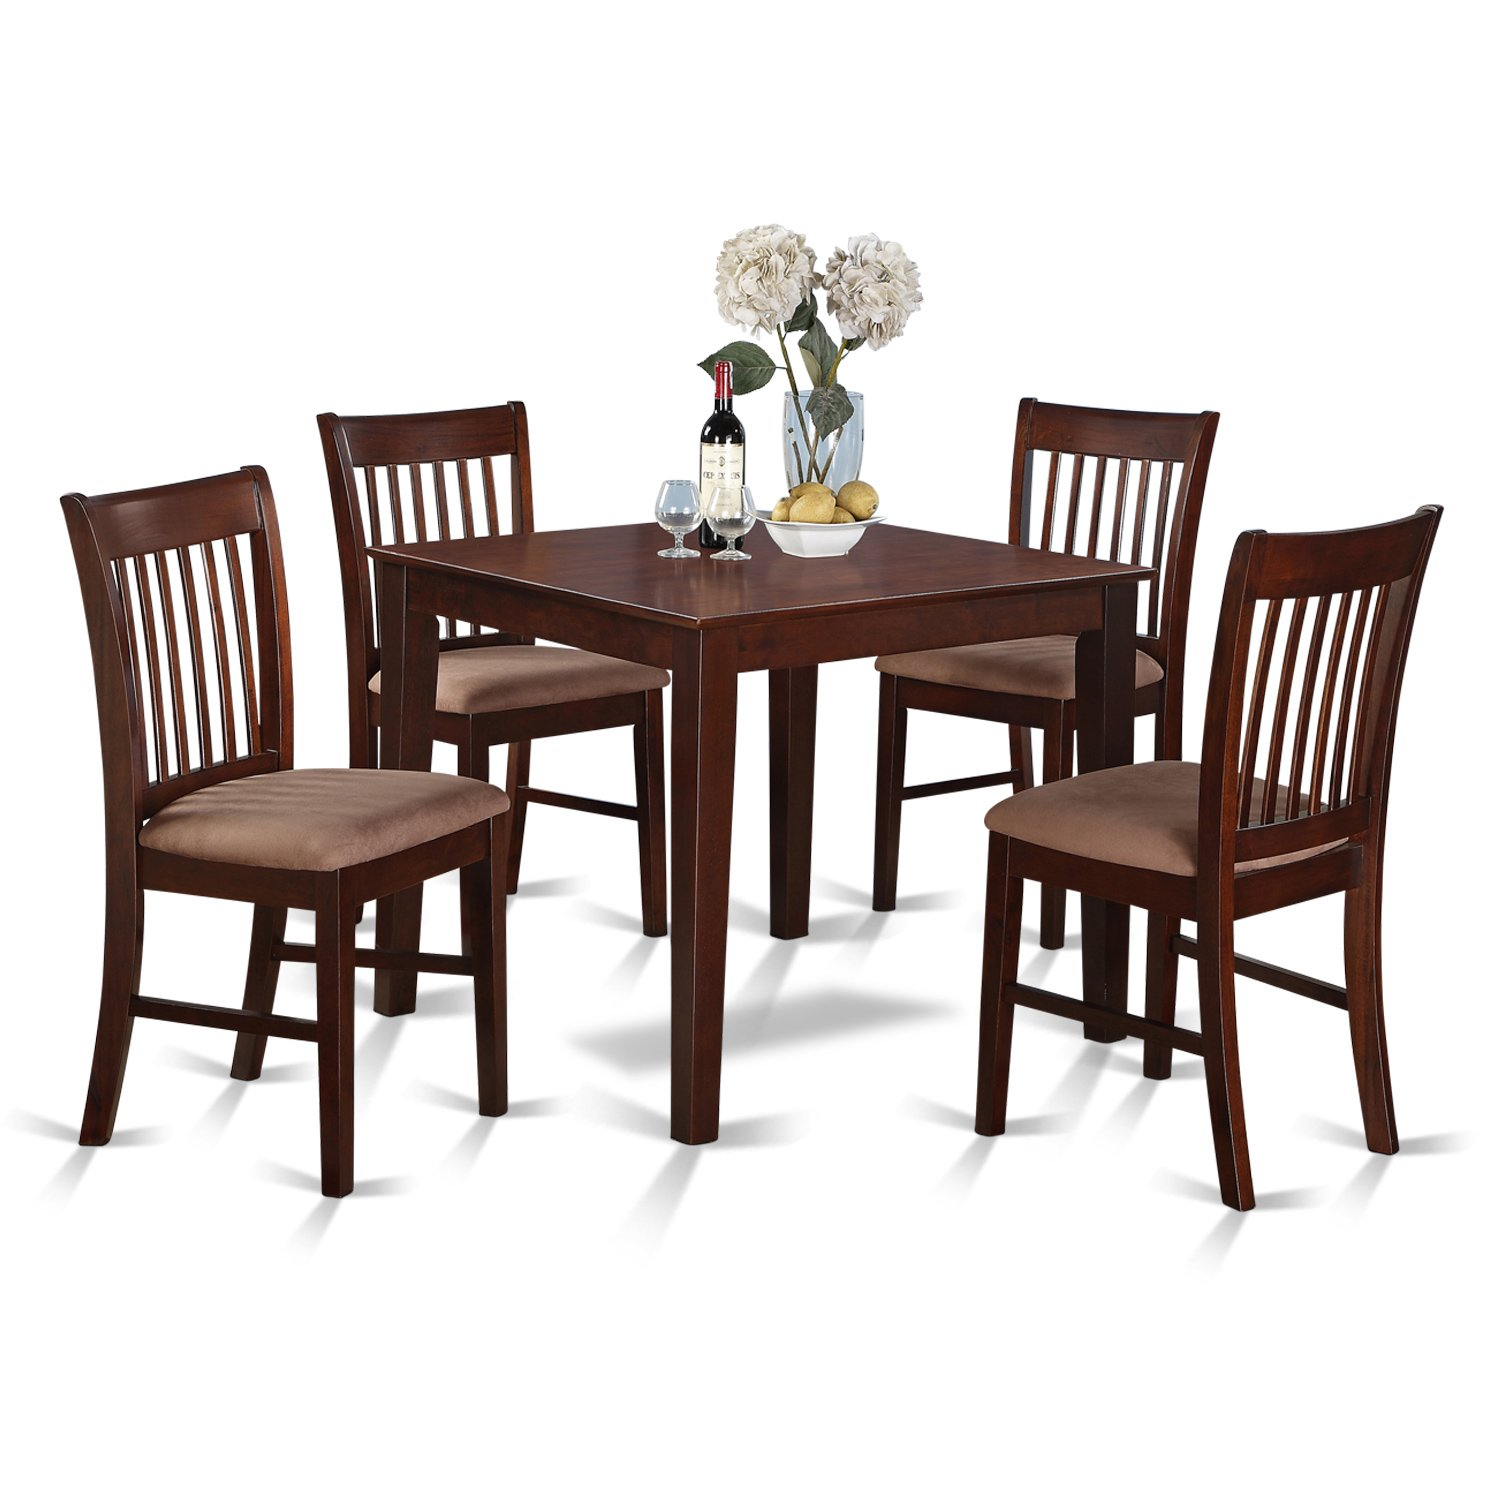 East West Furniture OXNO5-MAH-C Kitchen set Mahogany Finish by East West Furniture